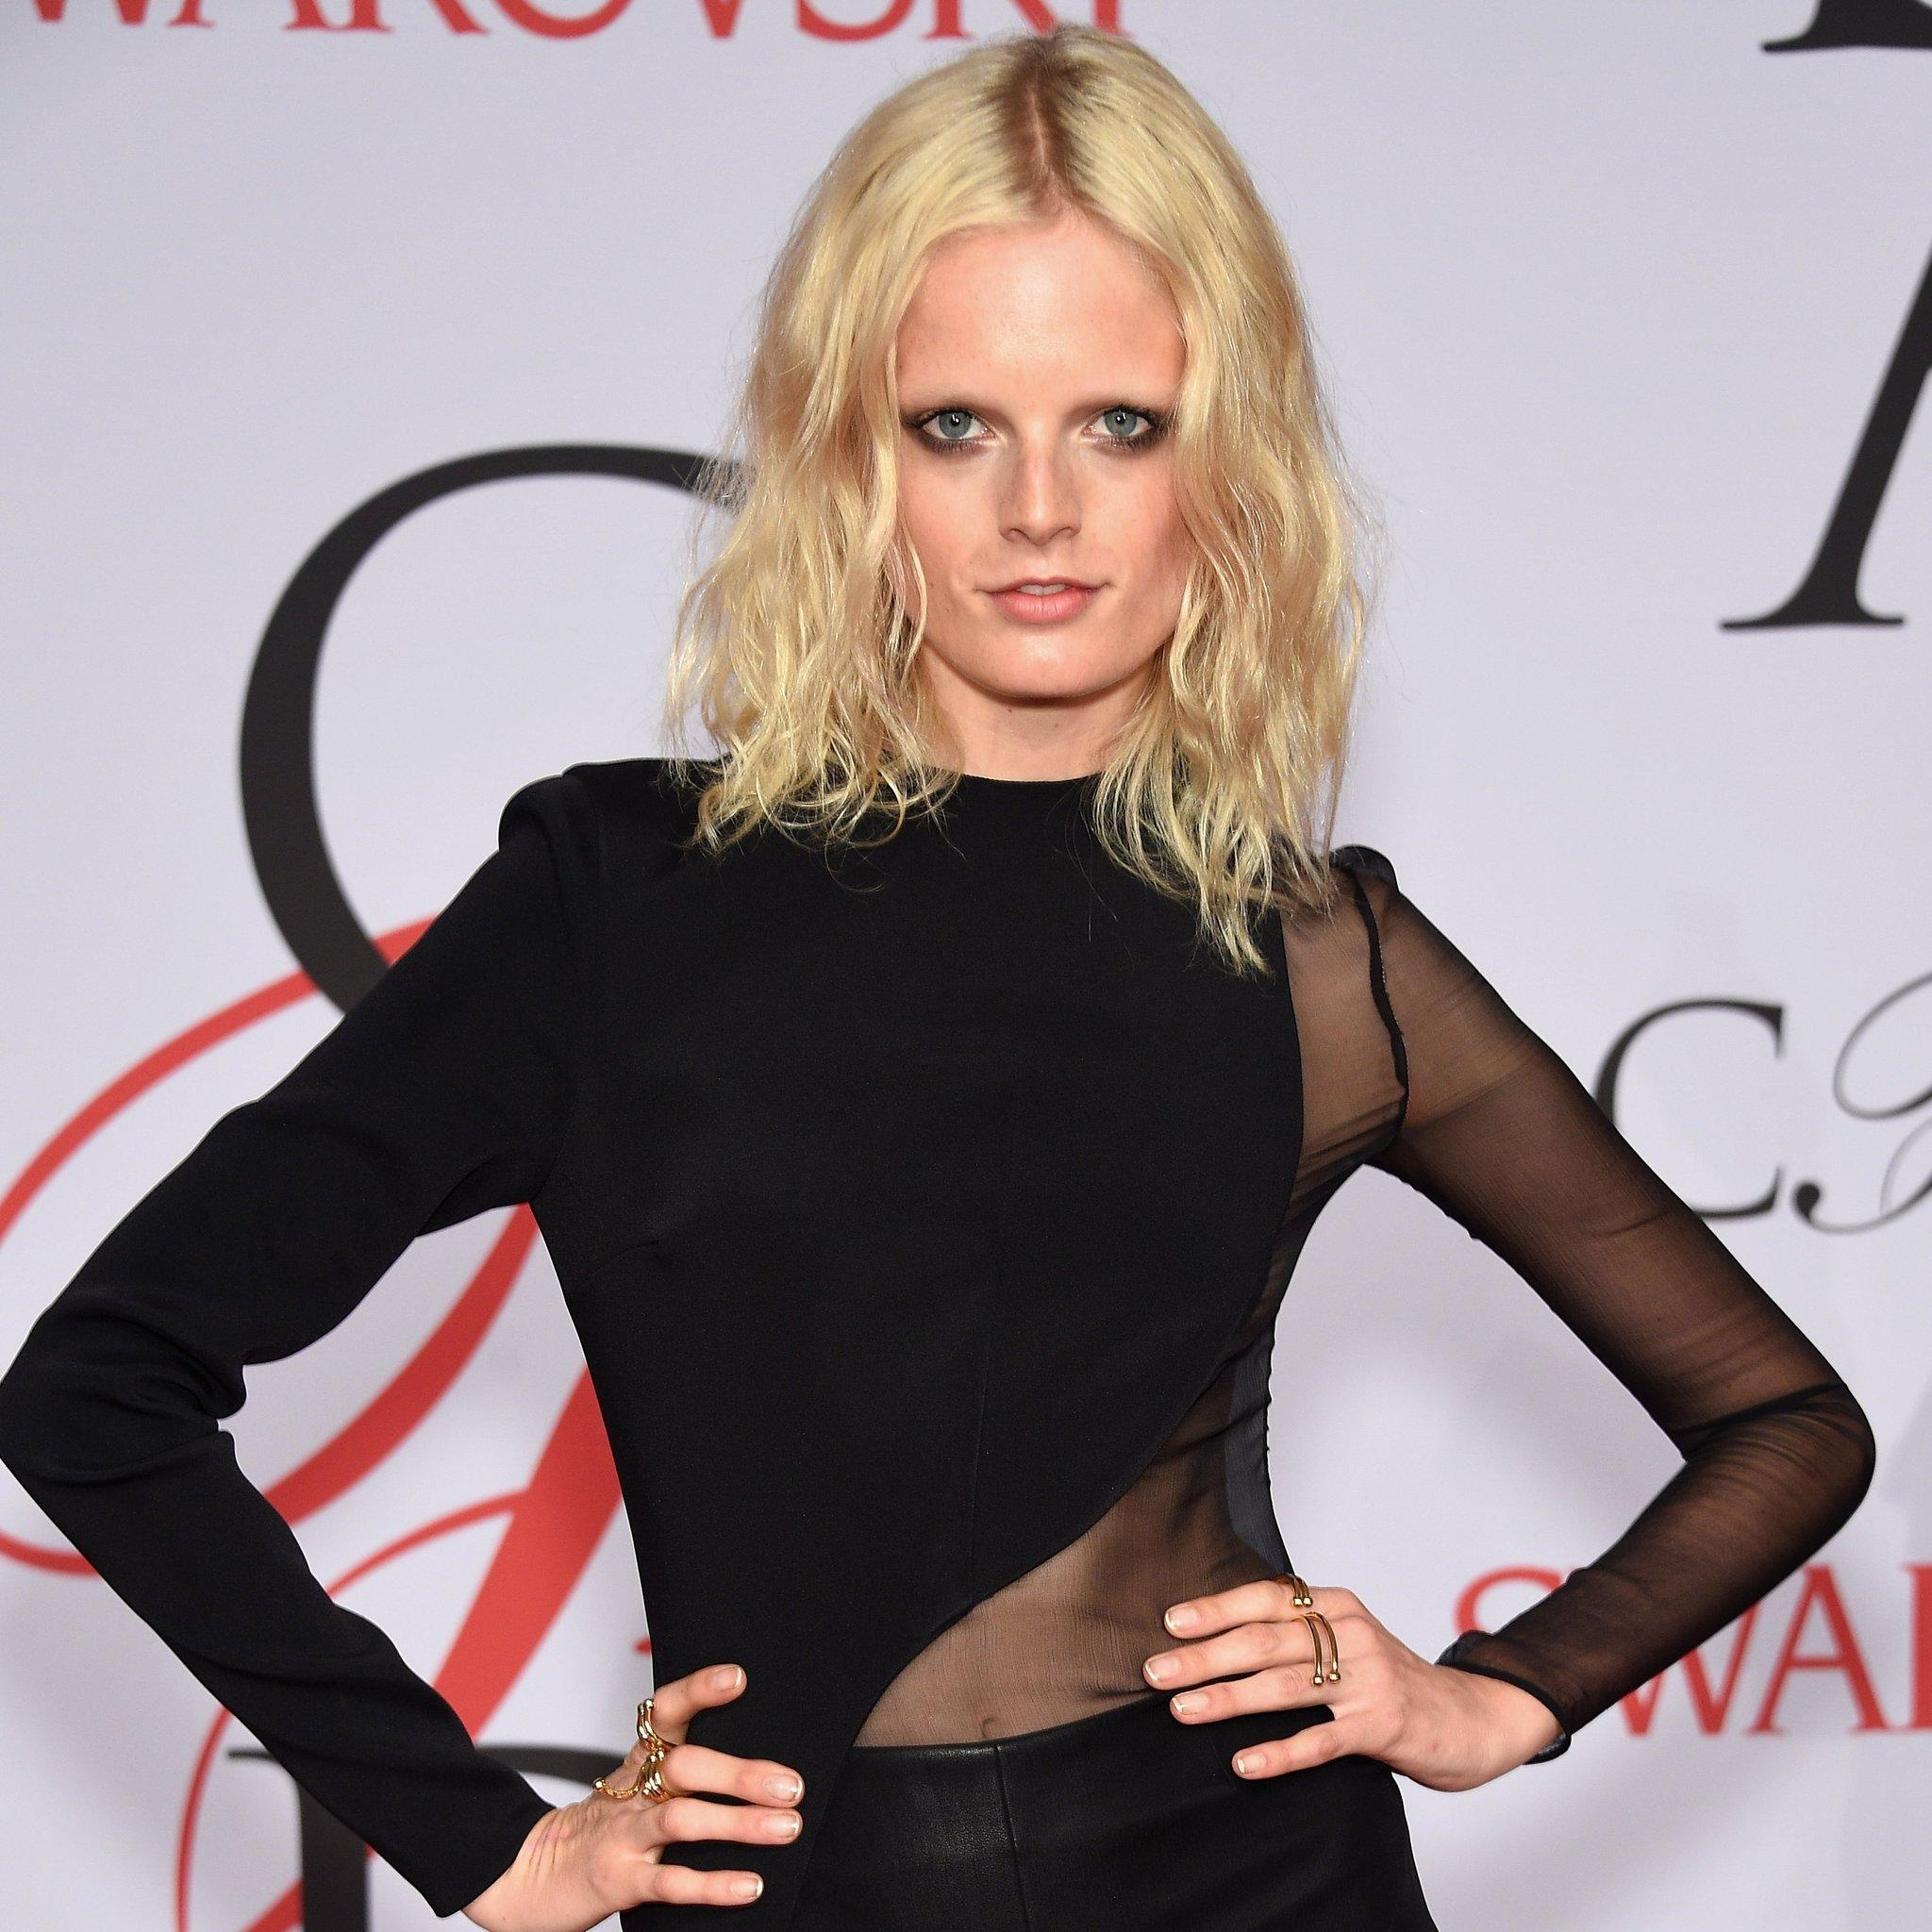 Selfie Hanne Gaby Odiele naked (13 foto and video), Tits, Fappening, Instagram, butt 2019